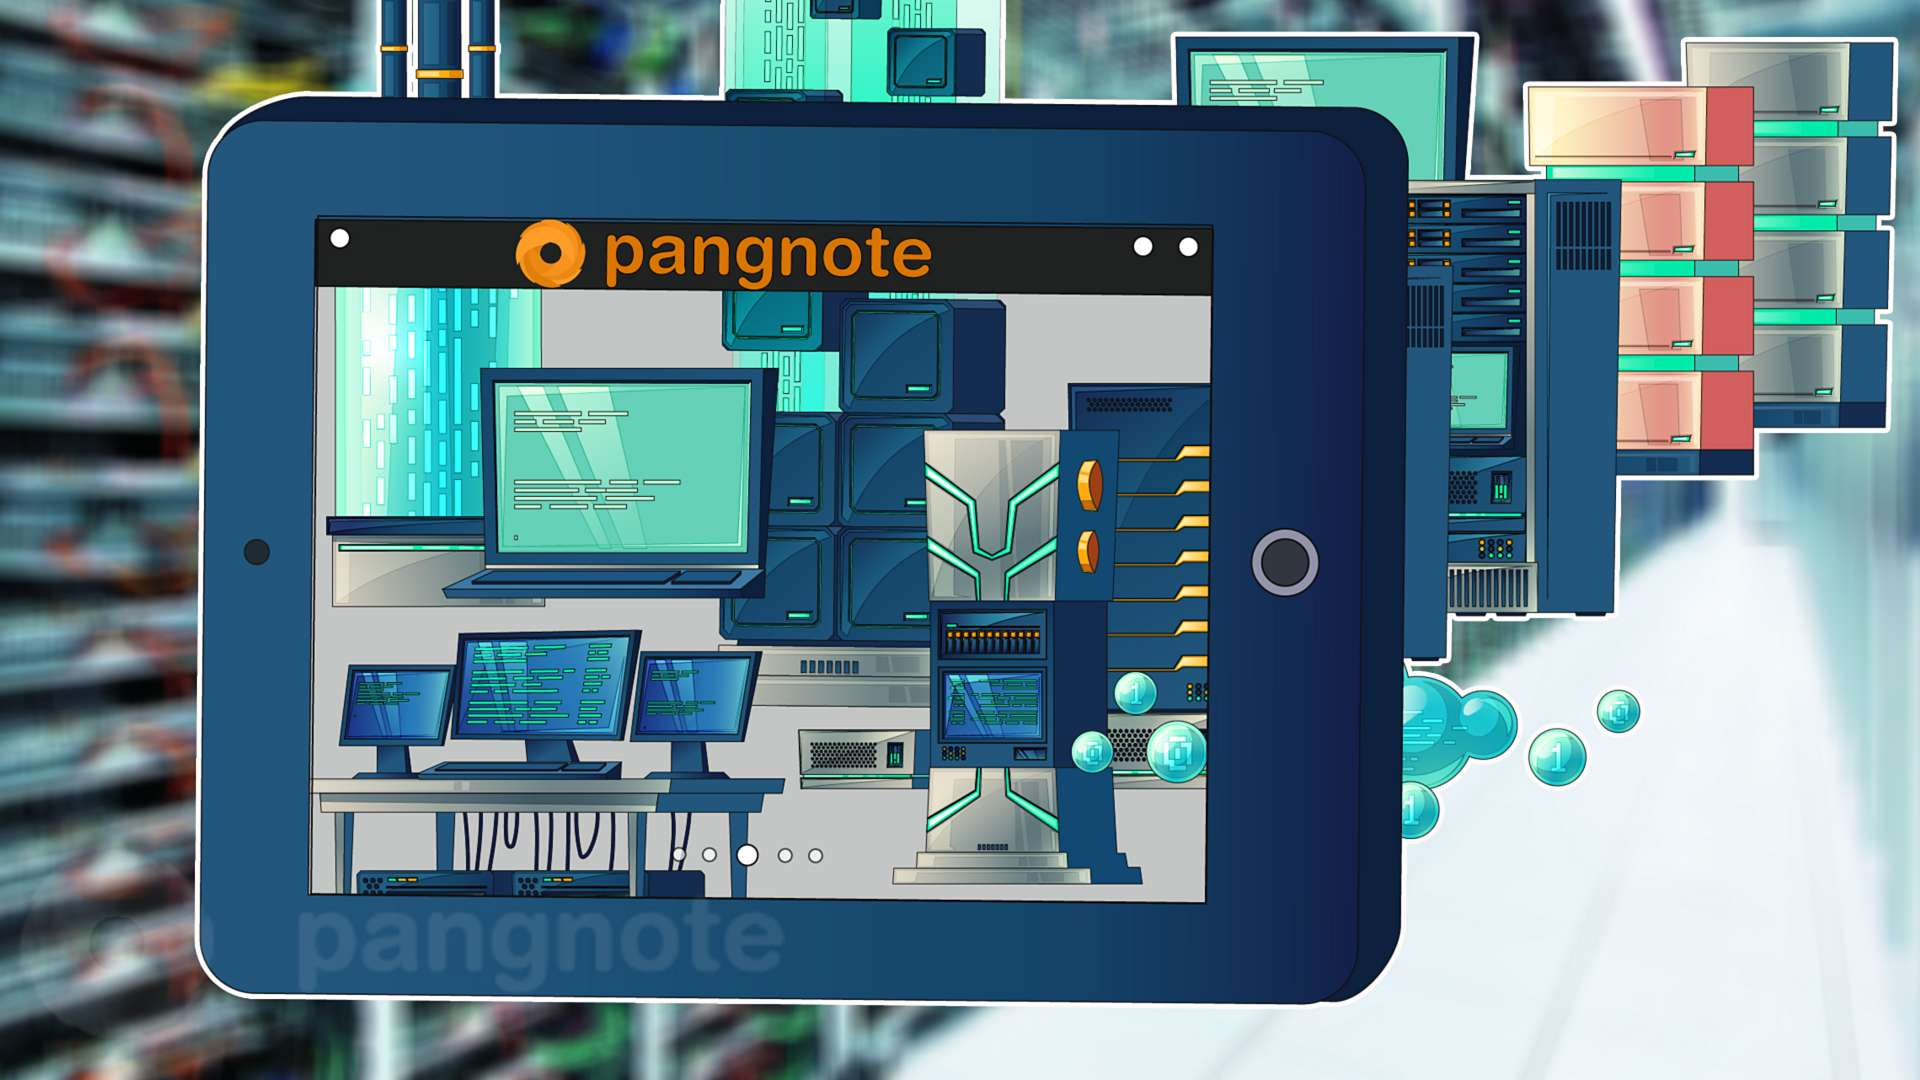 Why Pangnote a roaring Hosting services exchange and does not look like a forum